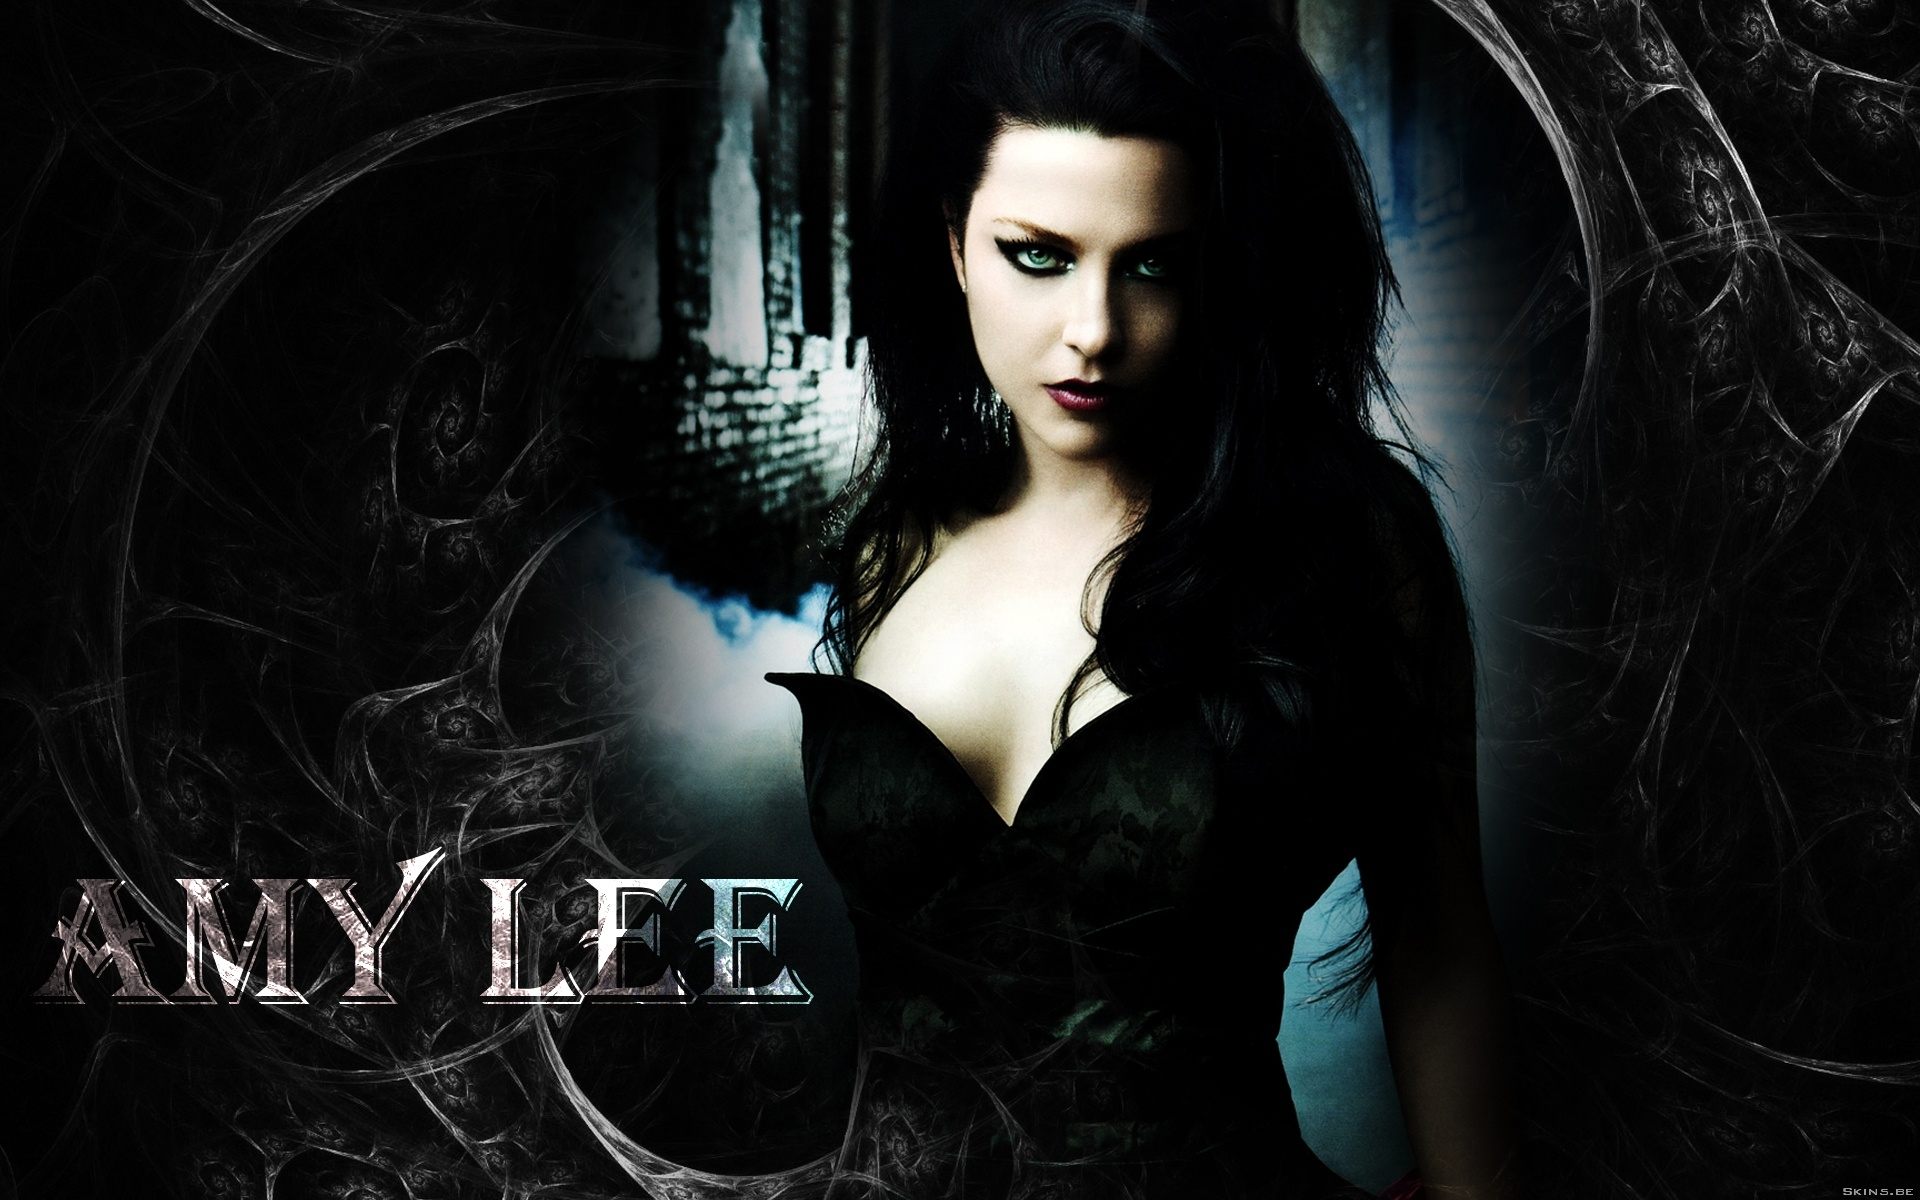 Lee   Amy Lee Wallpaper 30697704 1920x1200